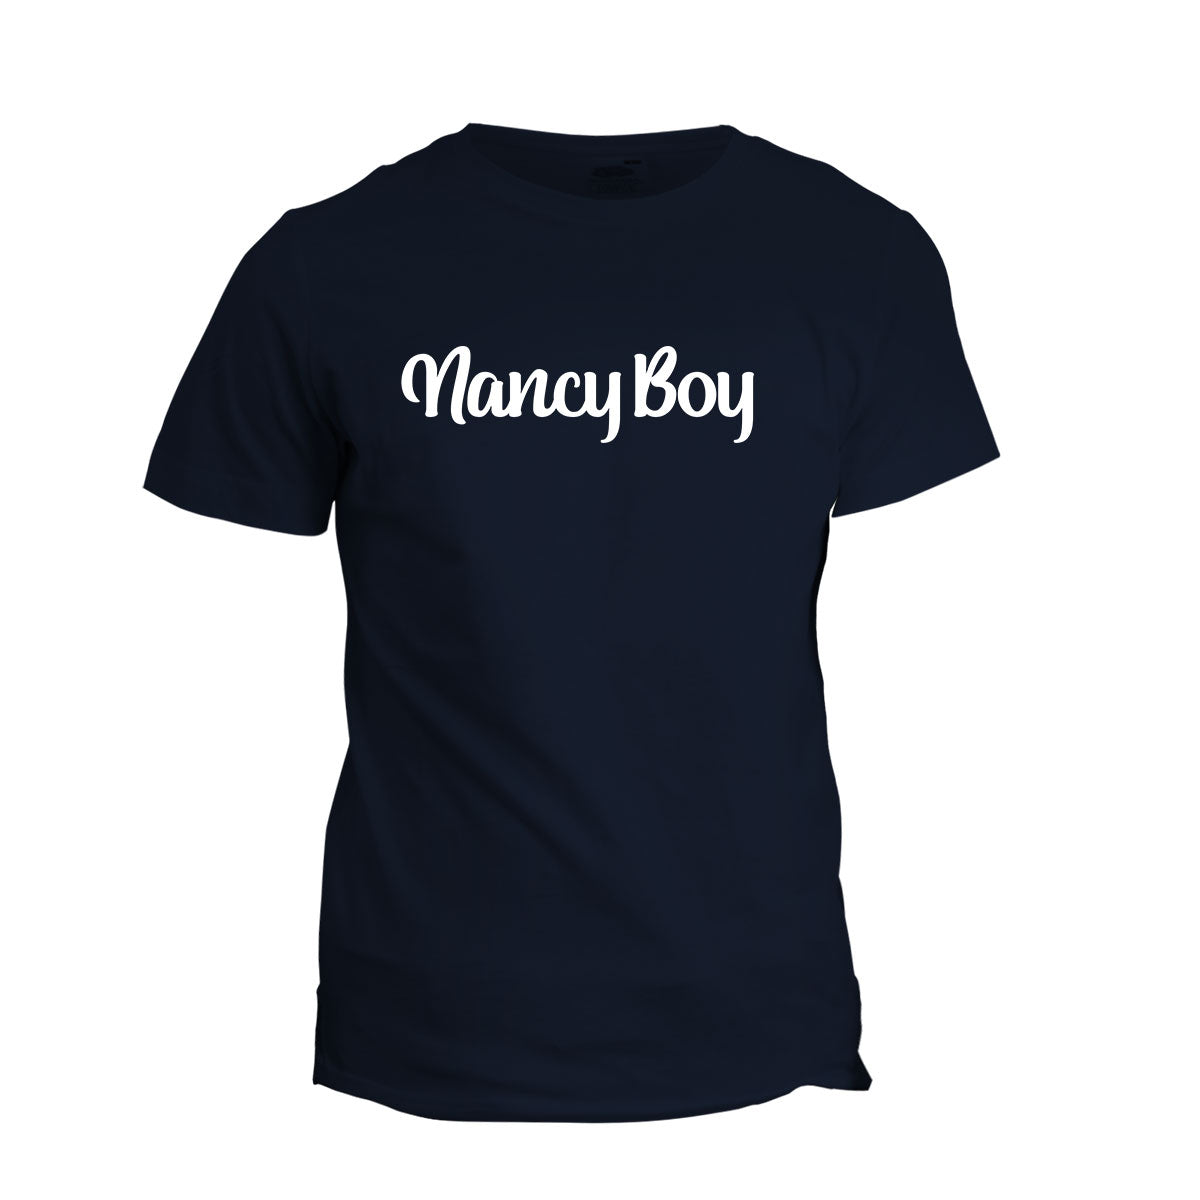 Nancy Boy Tee